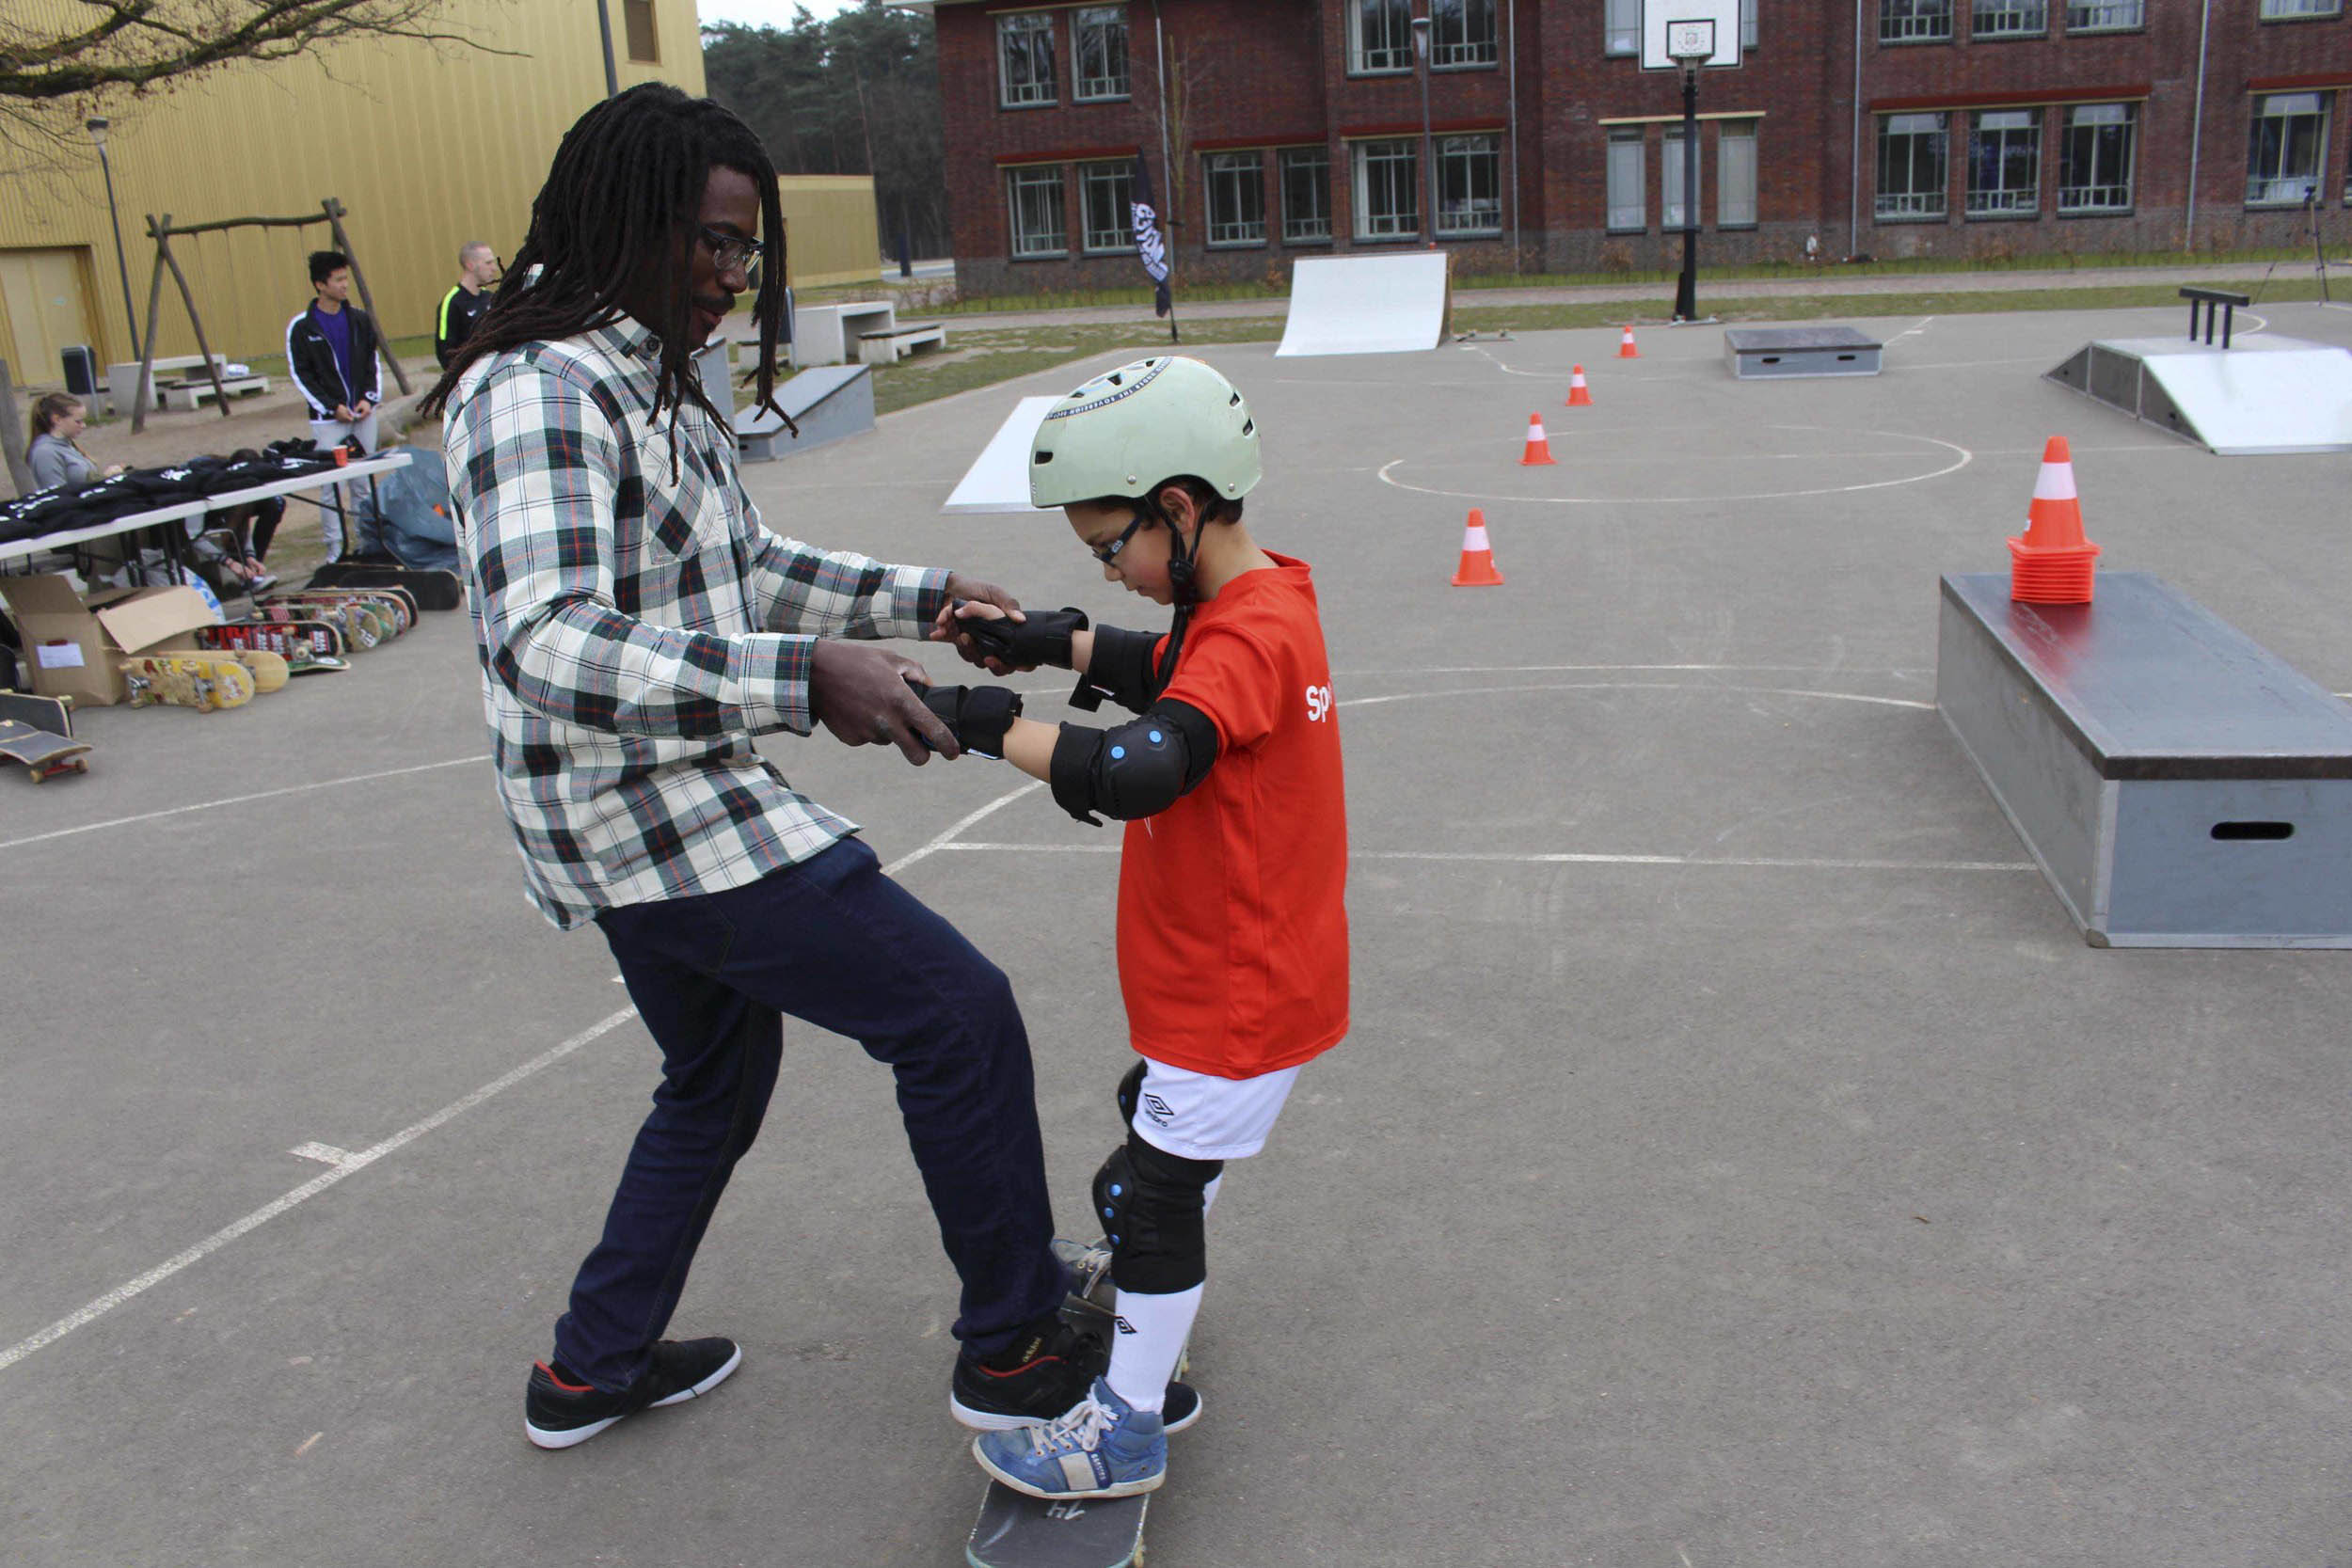 Neftalie Williams helps young skateboarder